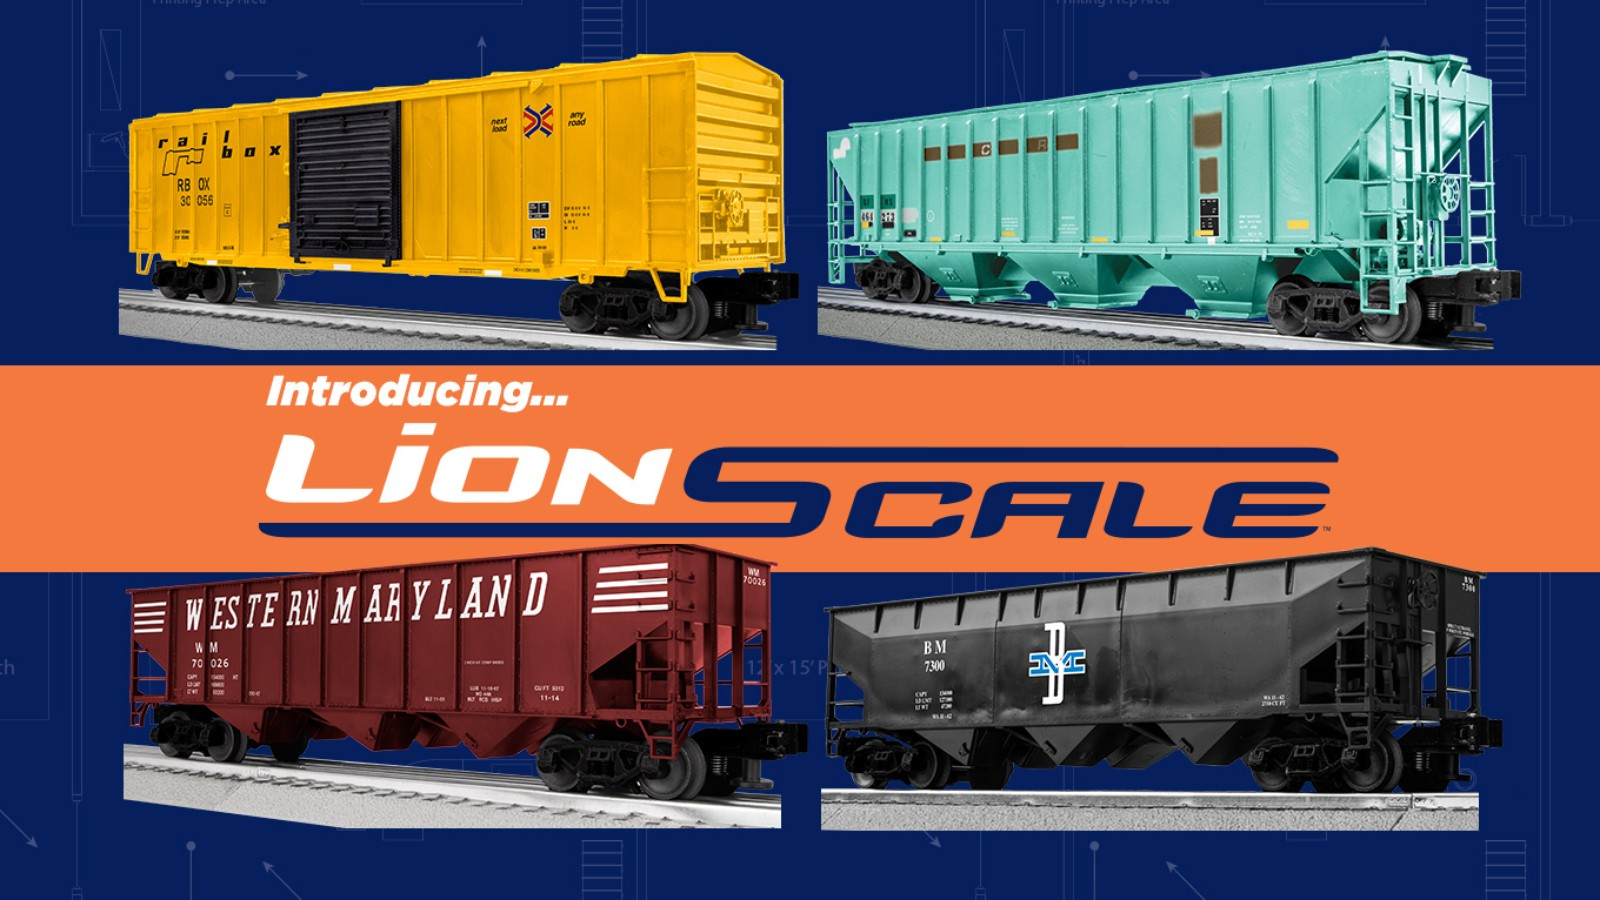 Lionel G Scale Locomotive Wiring Diagrams Electrical Diagram Model Train Railroad Cars At Trains Diesel Locomotives